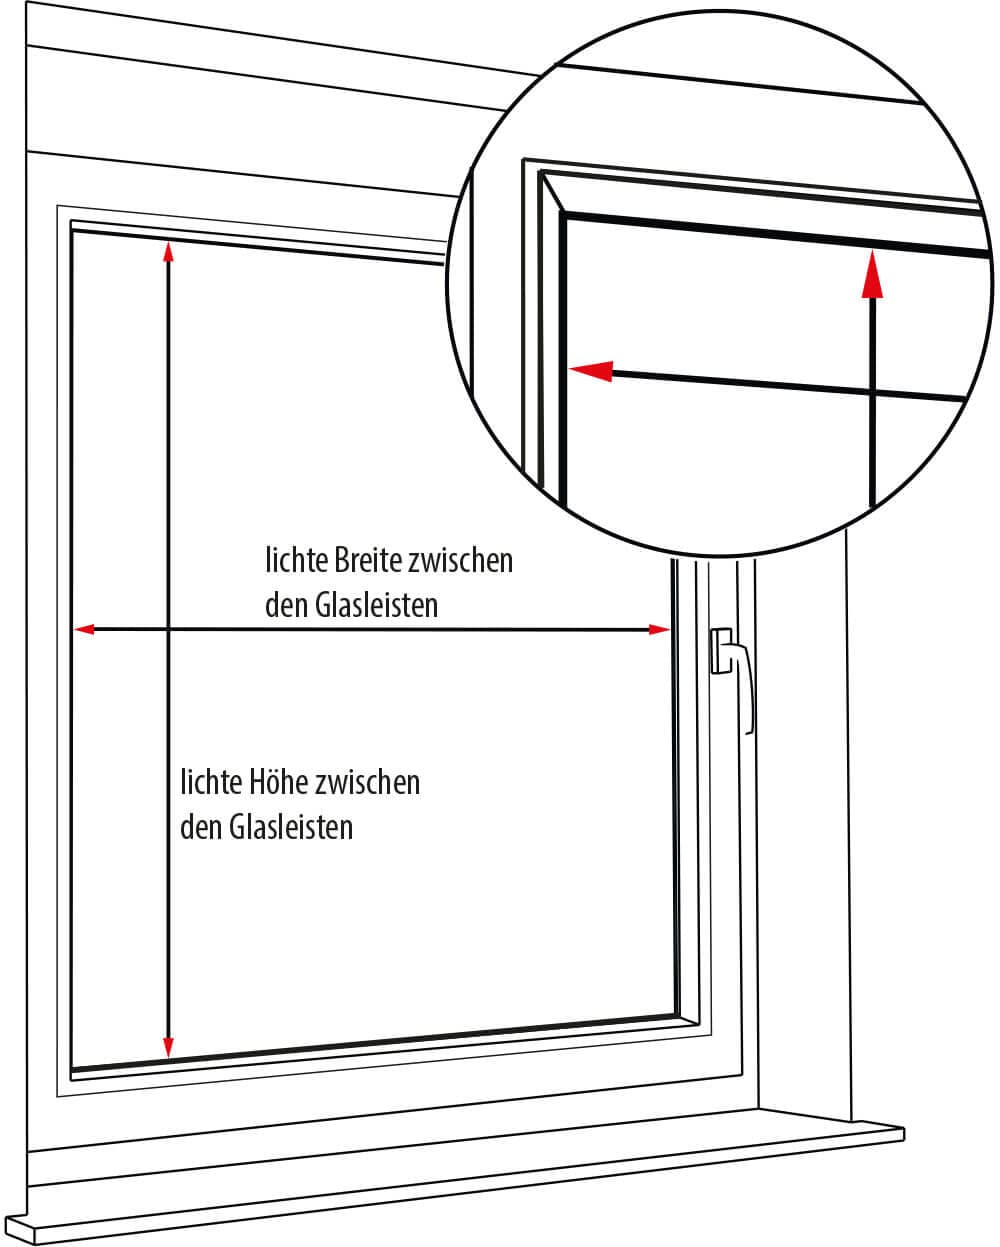 fenster ausmessen anleitung interesting briefpapier nach dinnorm gestalten saxoprint fr. Black Bedroom Furniture Sets. Home Design Ideas